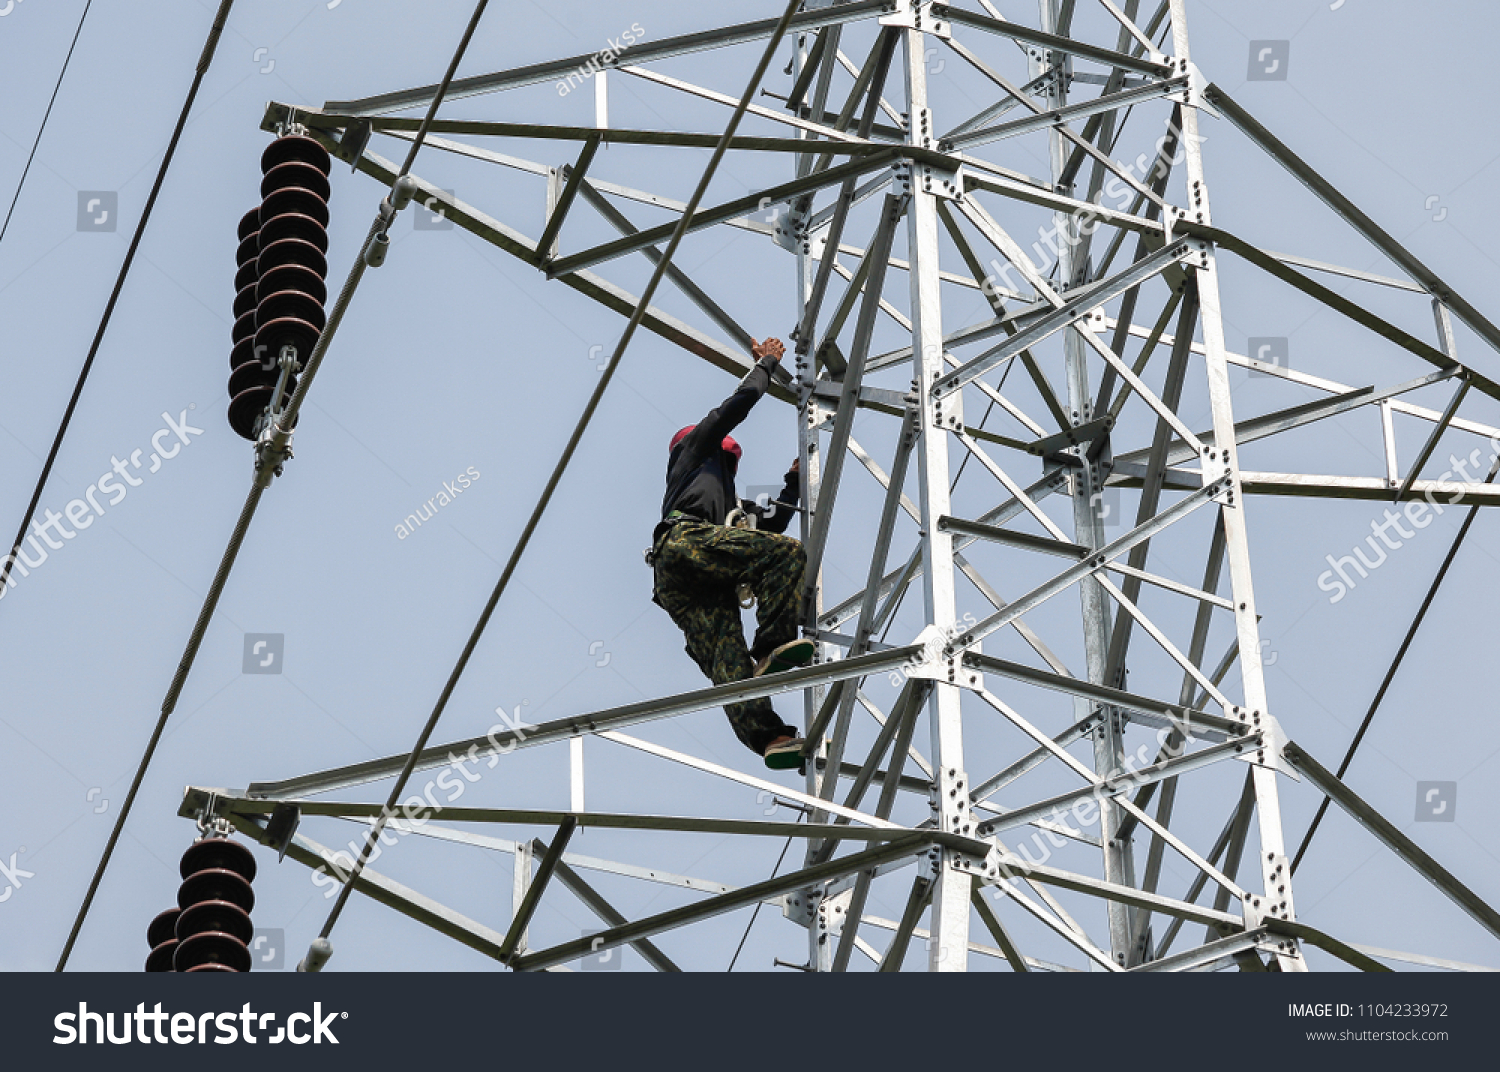 Lineman Climbing On Transmission Line Tower Stock Photo Edit Now 1104233972